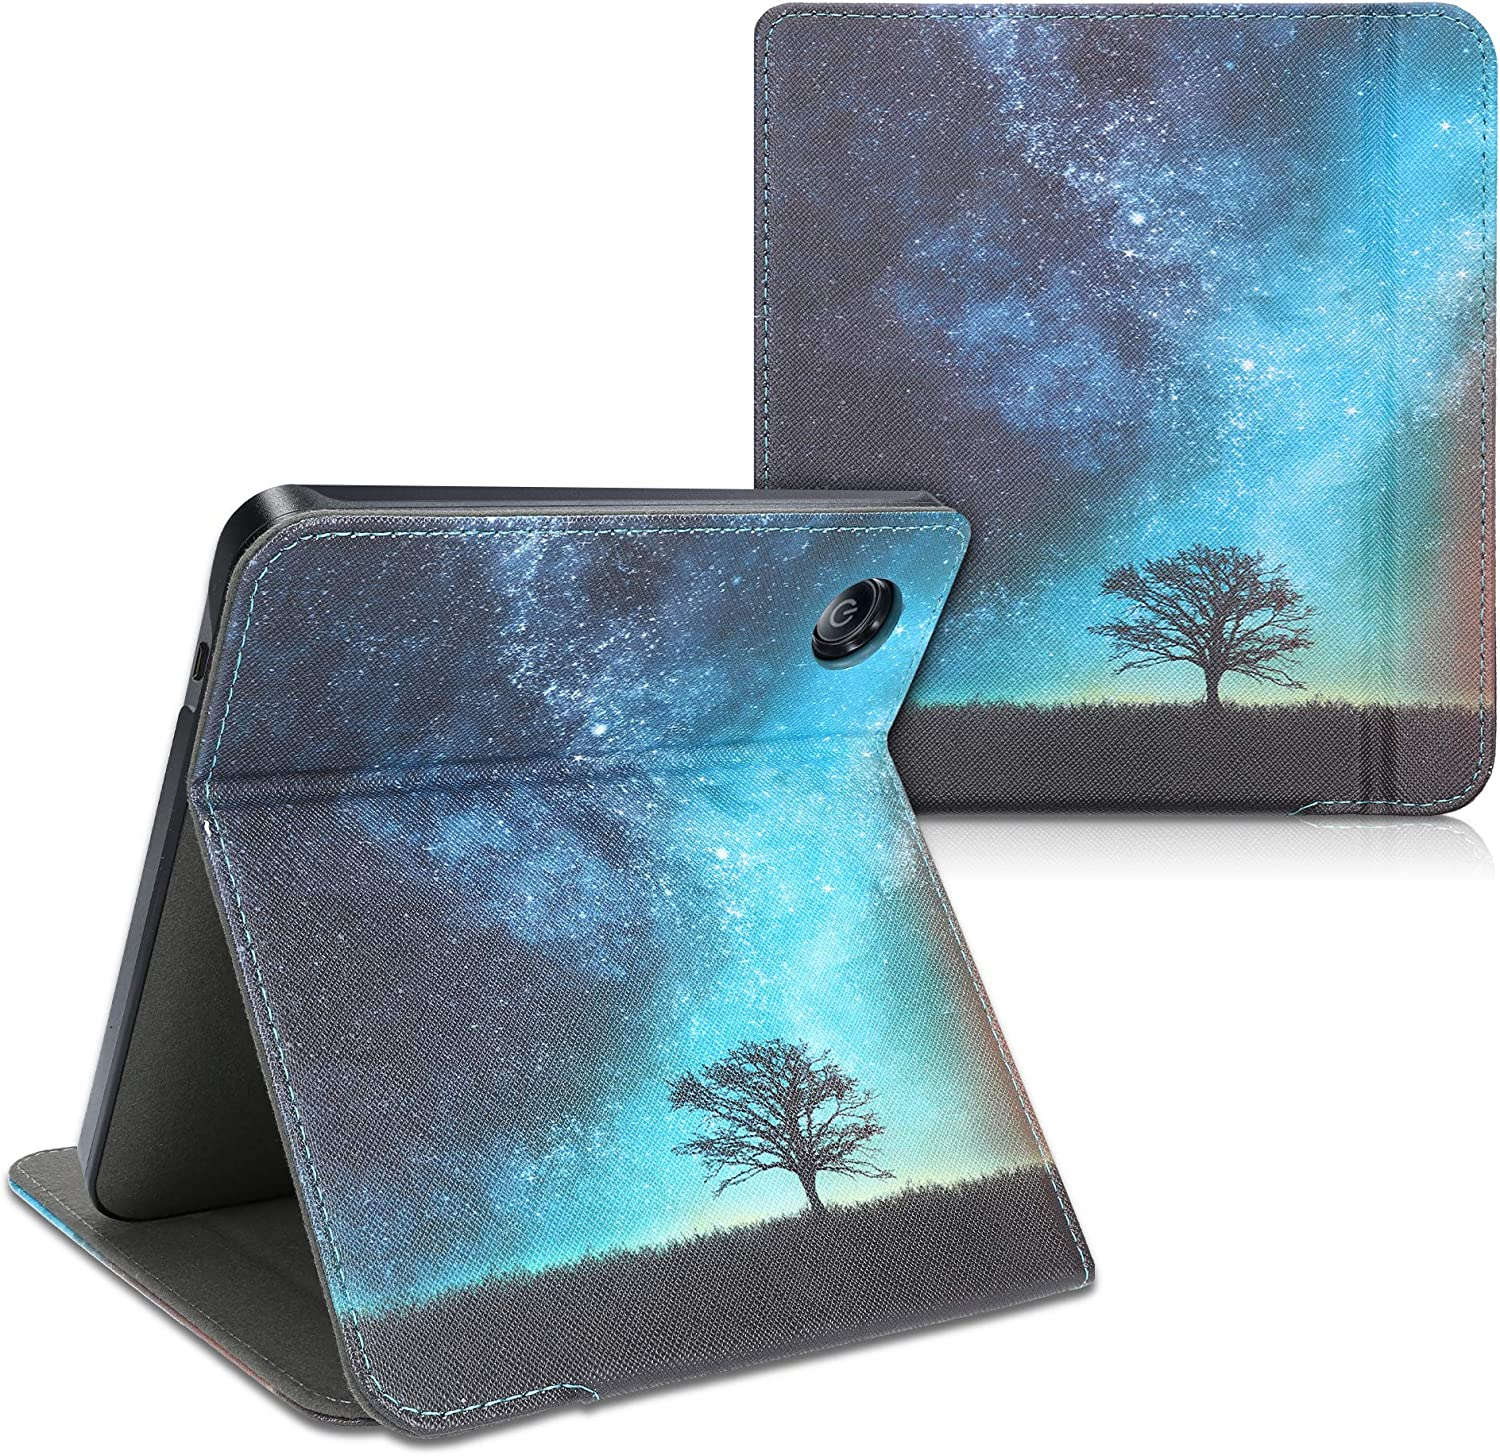 PU Leather e-Reader Case kwmobile Cover Compatible with Kobo Libra H2O Cosmic Nature Blue//Grey//Black